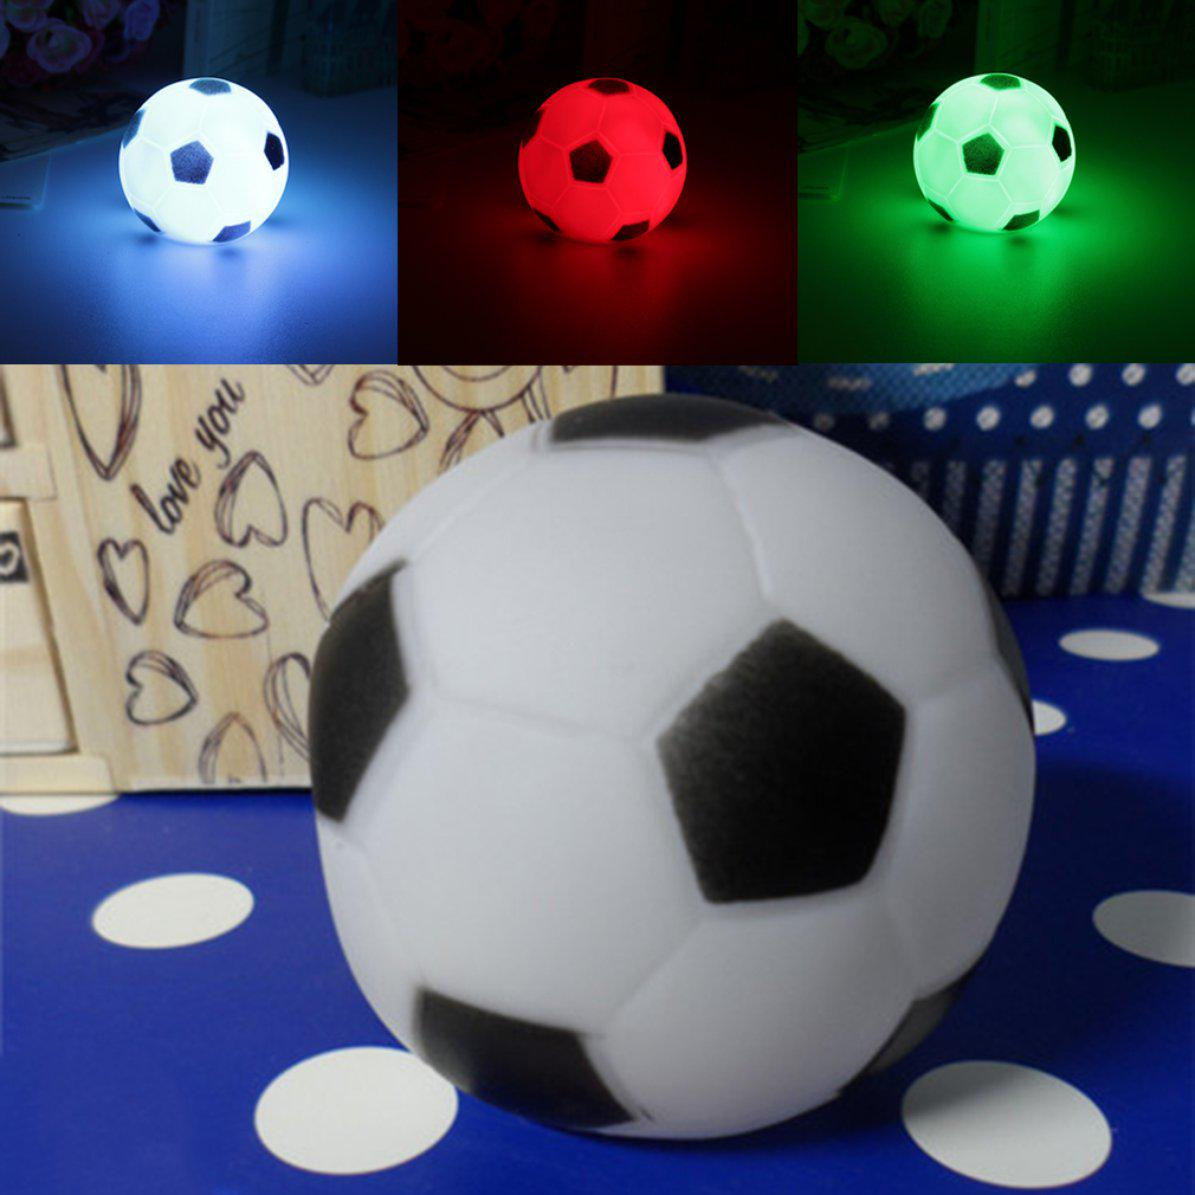 Baby Night Light Color Changing Soccer Football LED Light Night Lamp Party Decor Gift New Child Led Night LightBaby Night Light Color Changing Soccer Football LED Light Night Lamp Party Decor Gift New Child Led Night Light